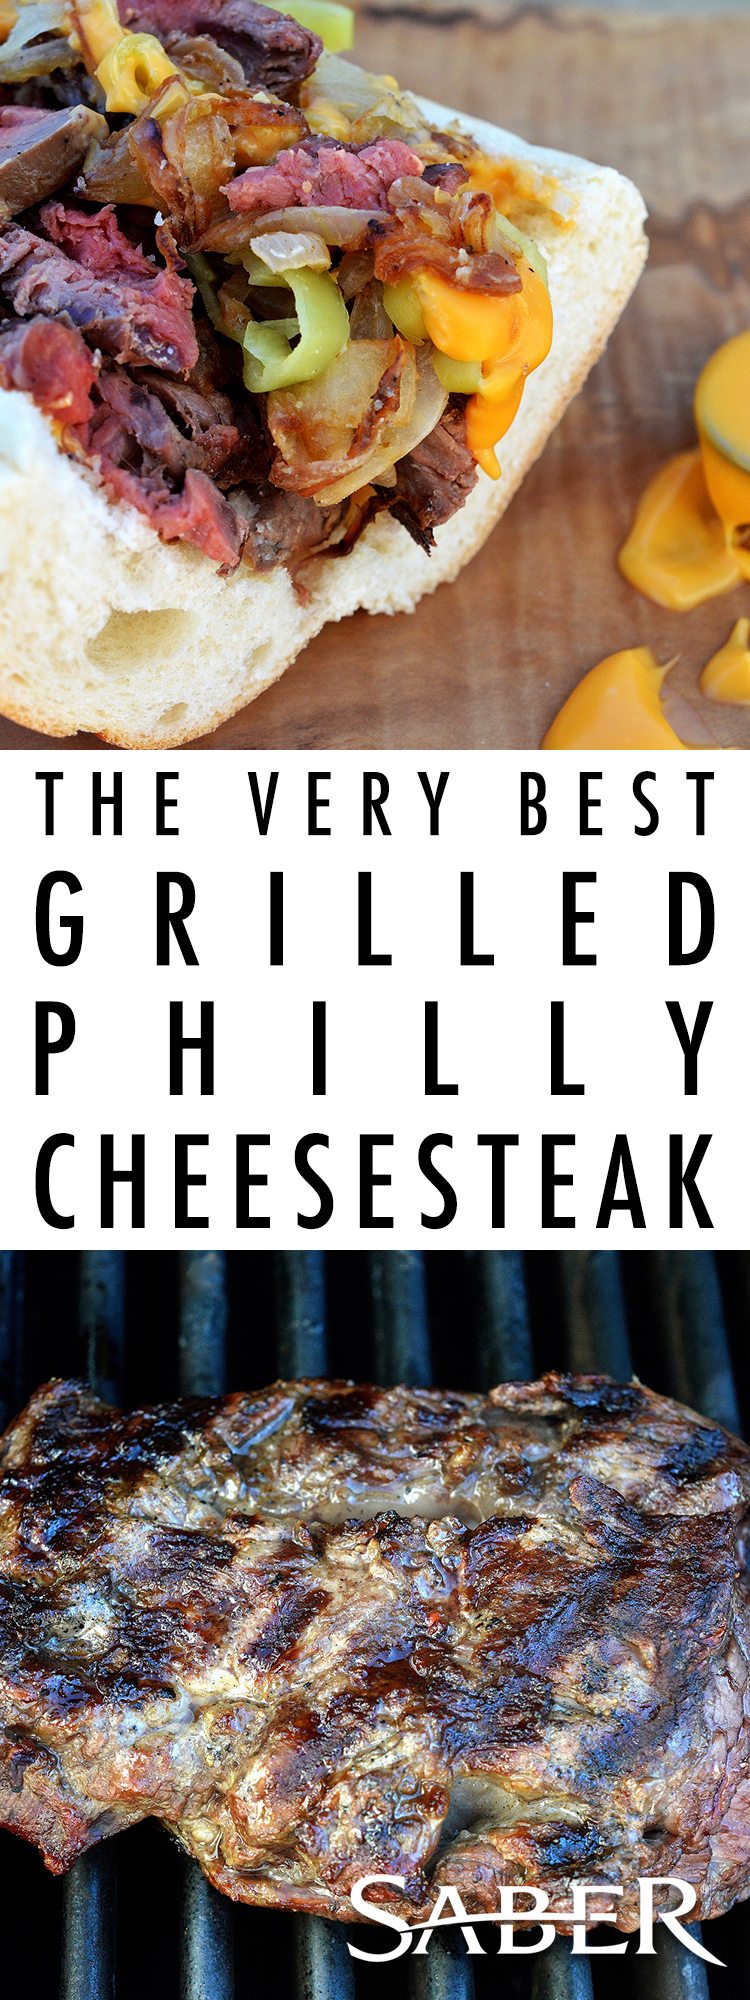 grilled philly cheesesteak